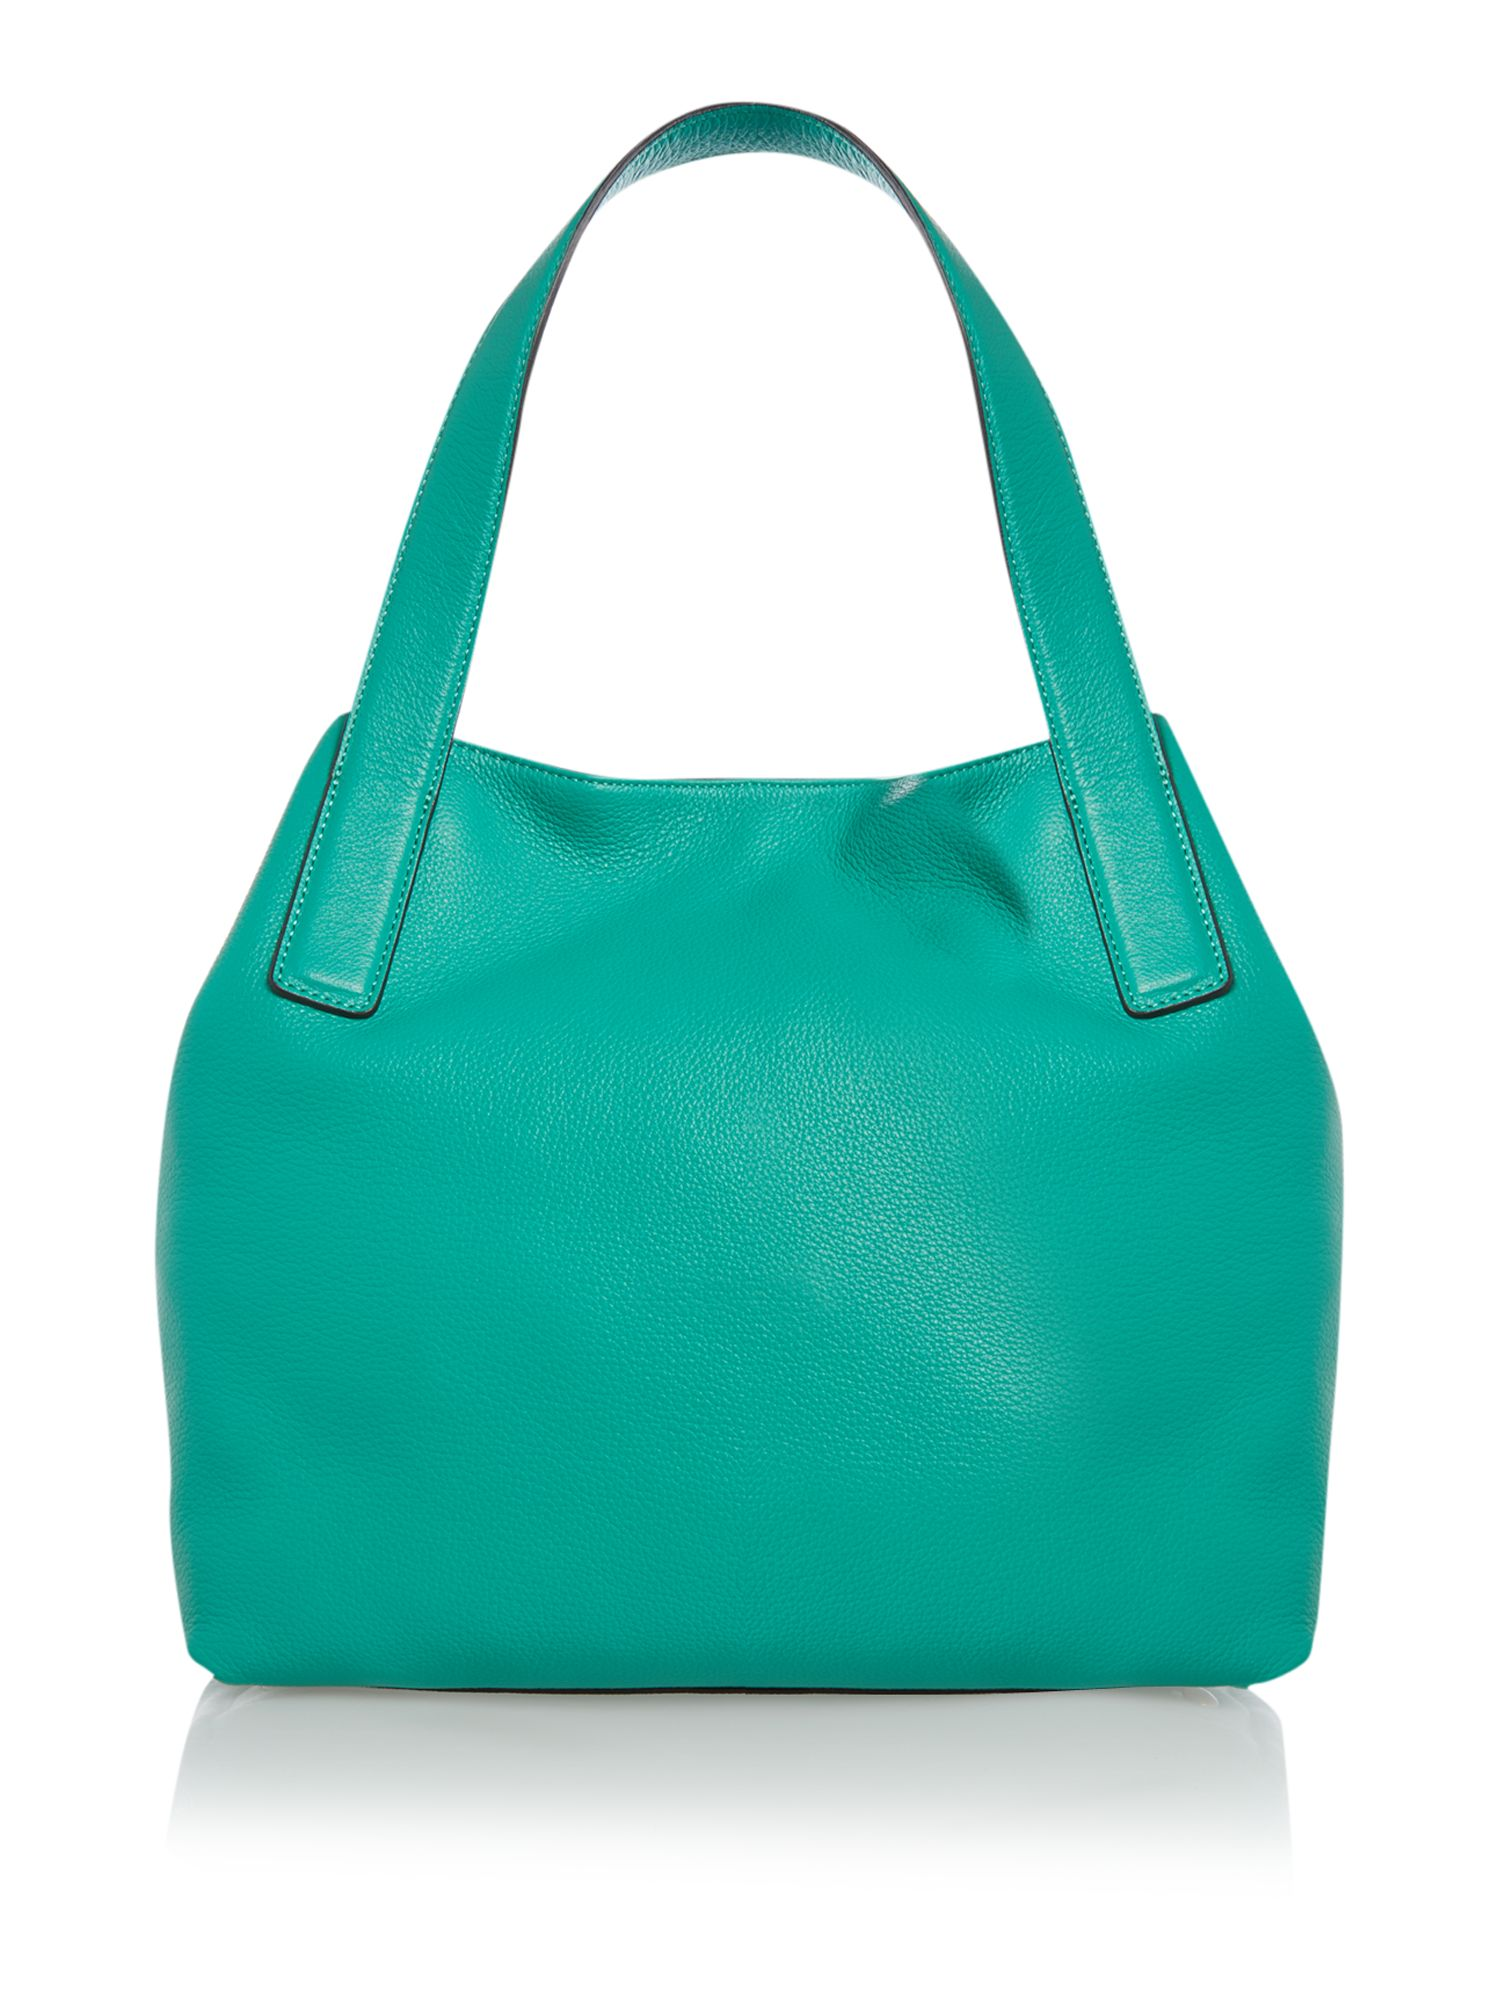 Mila green tote bag